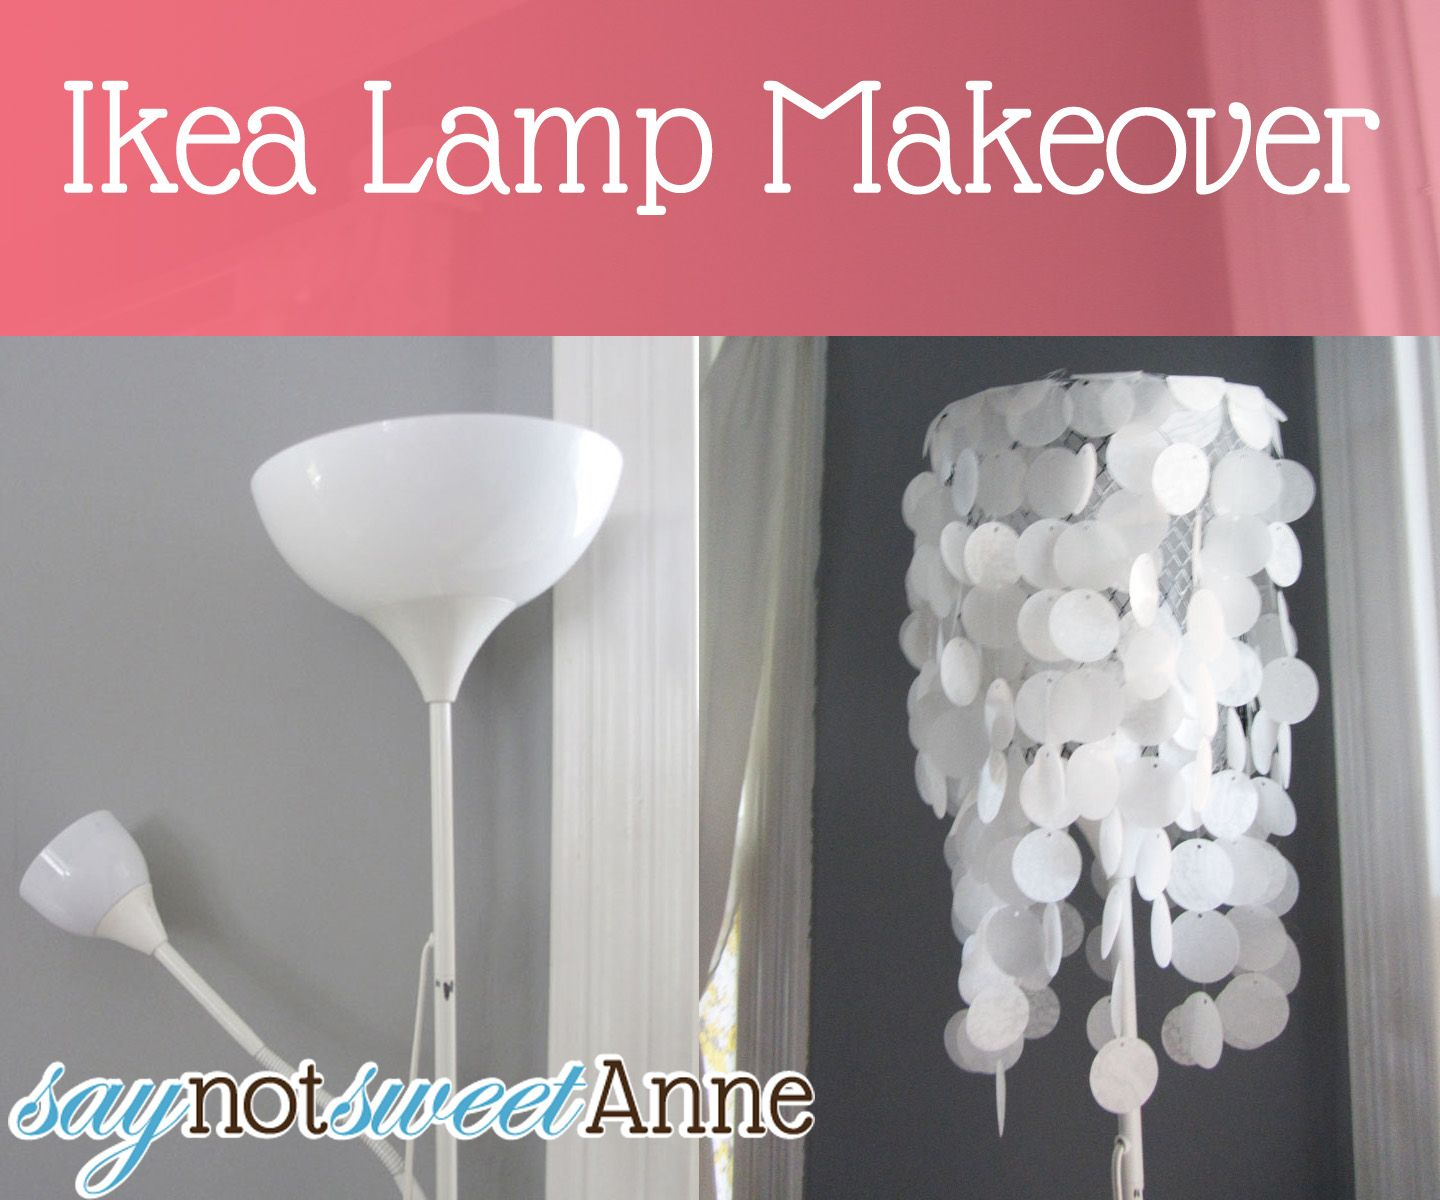 Ikea Lamp Makeover | Ikea hacks, Ikea and Hacks